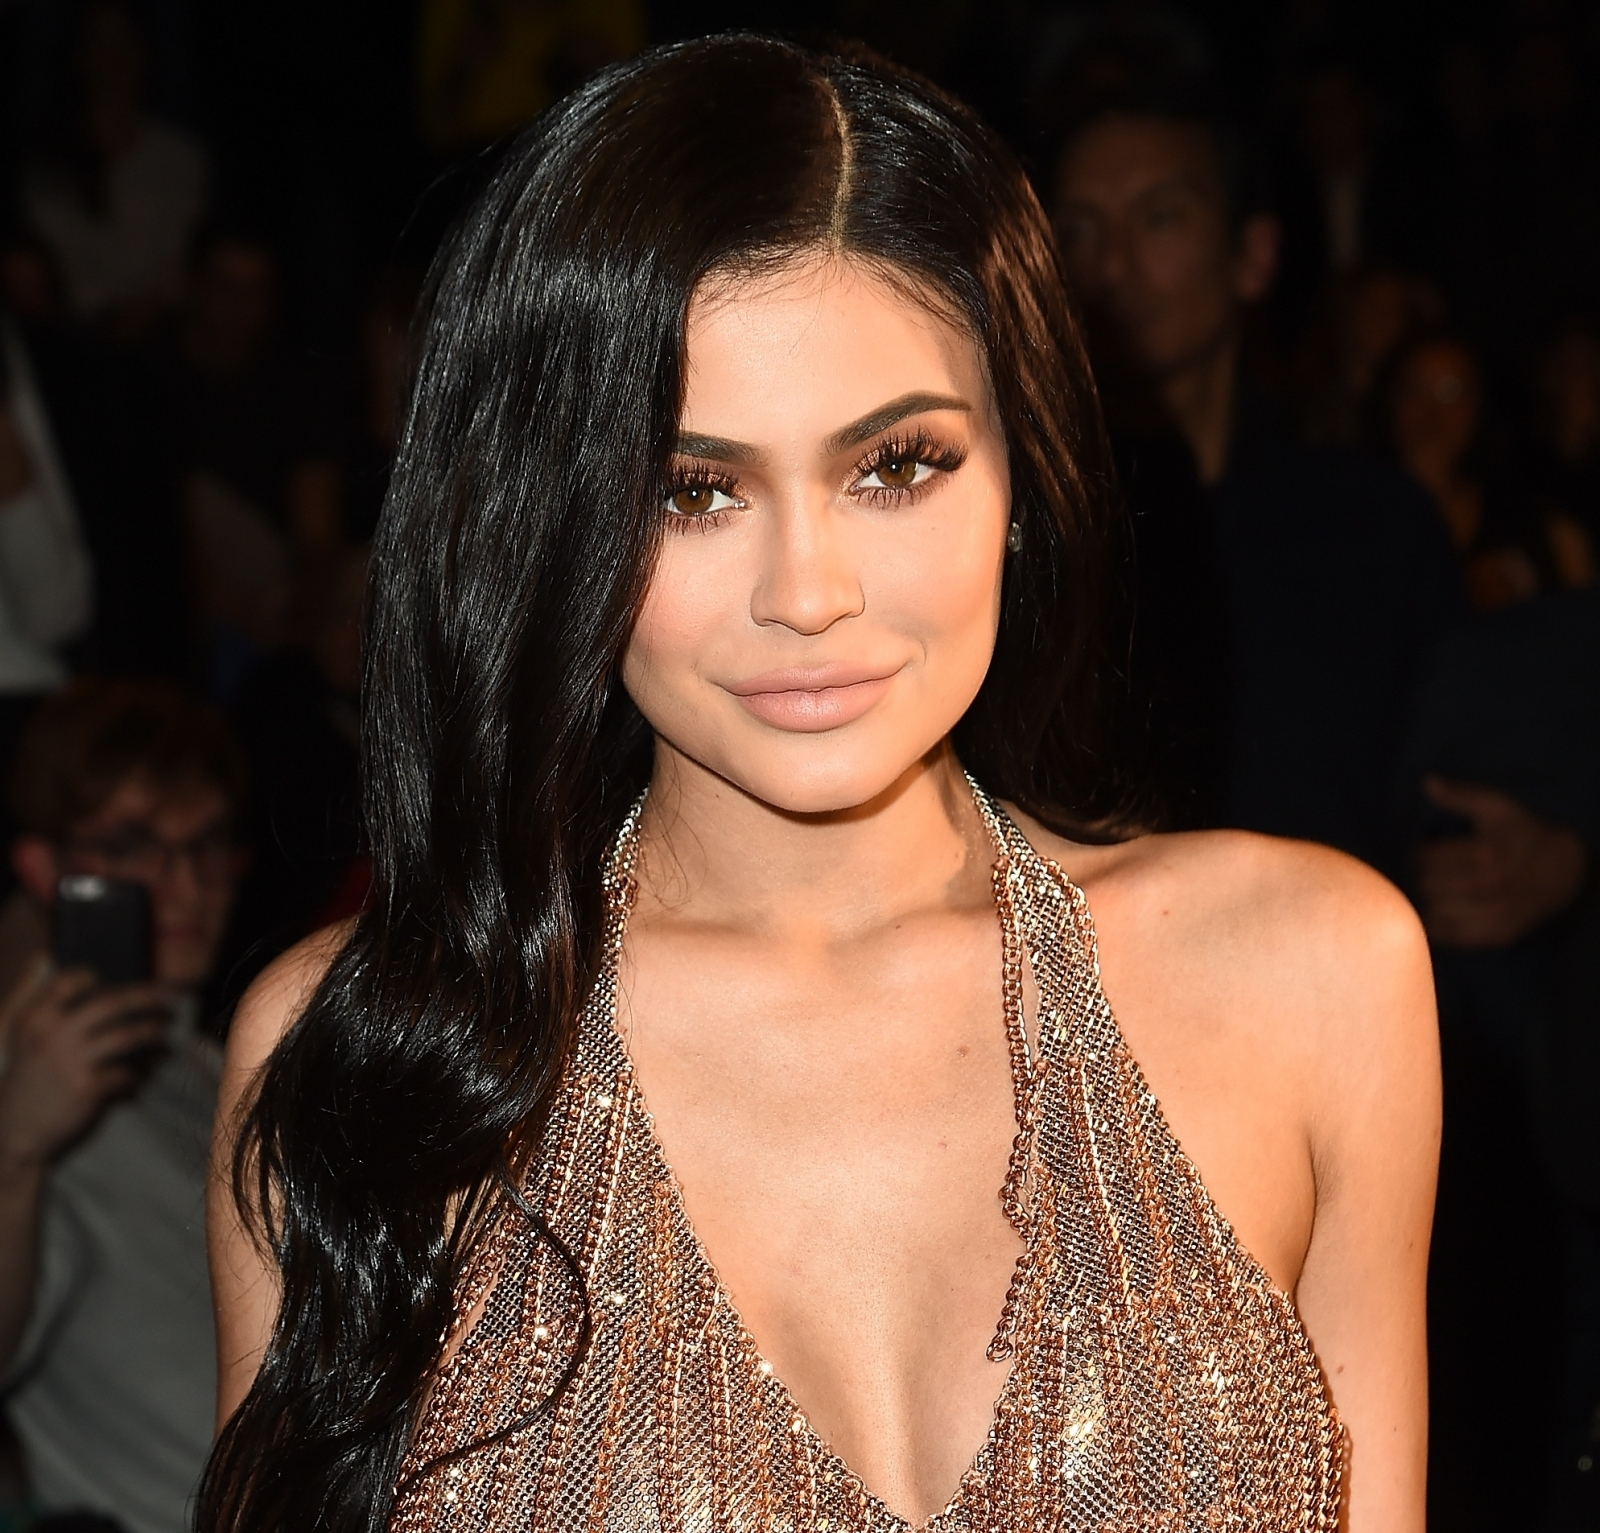 Kylie Jenner smoulders in see-through lingerie, says she feels like 'an old woman in a 19-year-old's body'